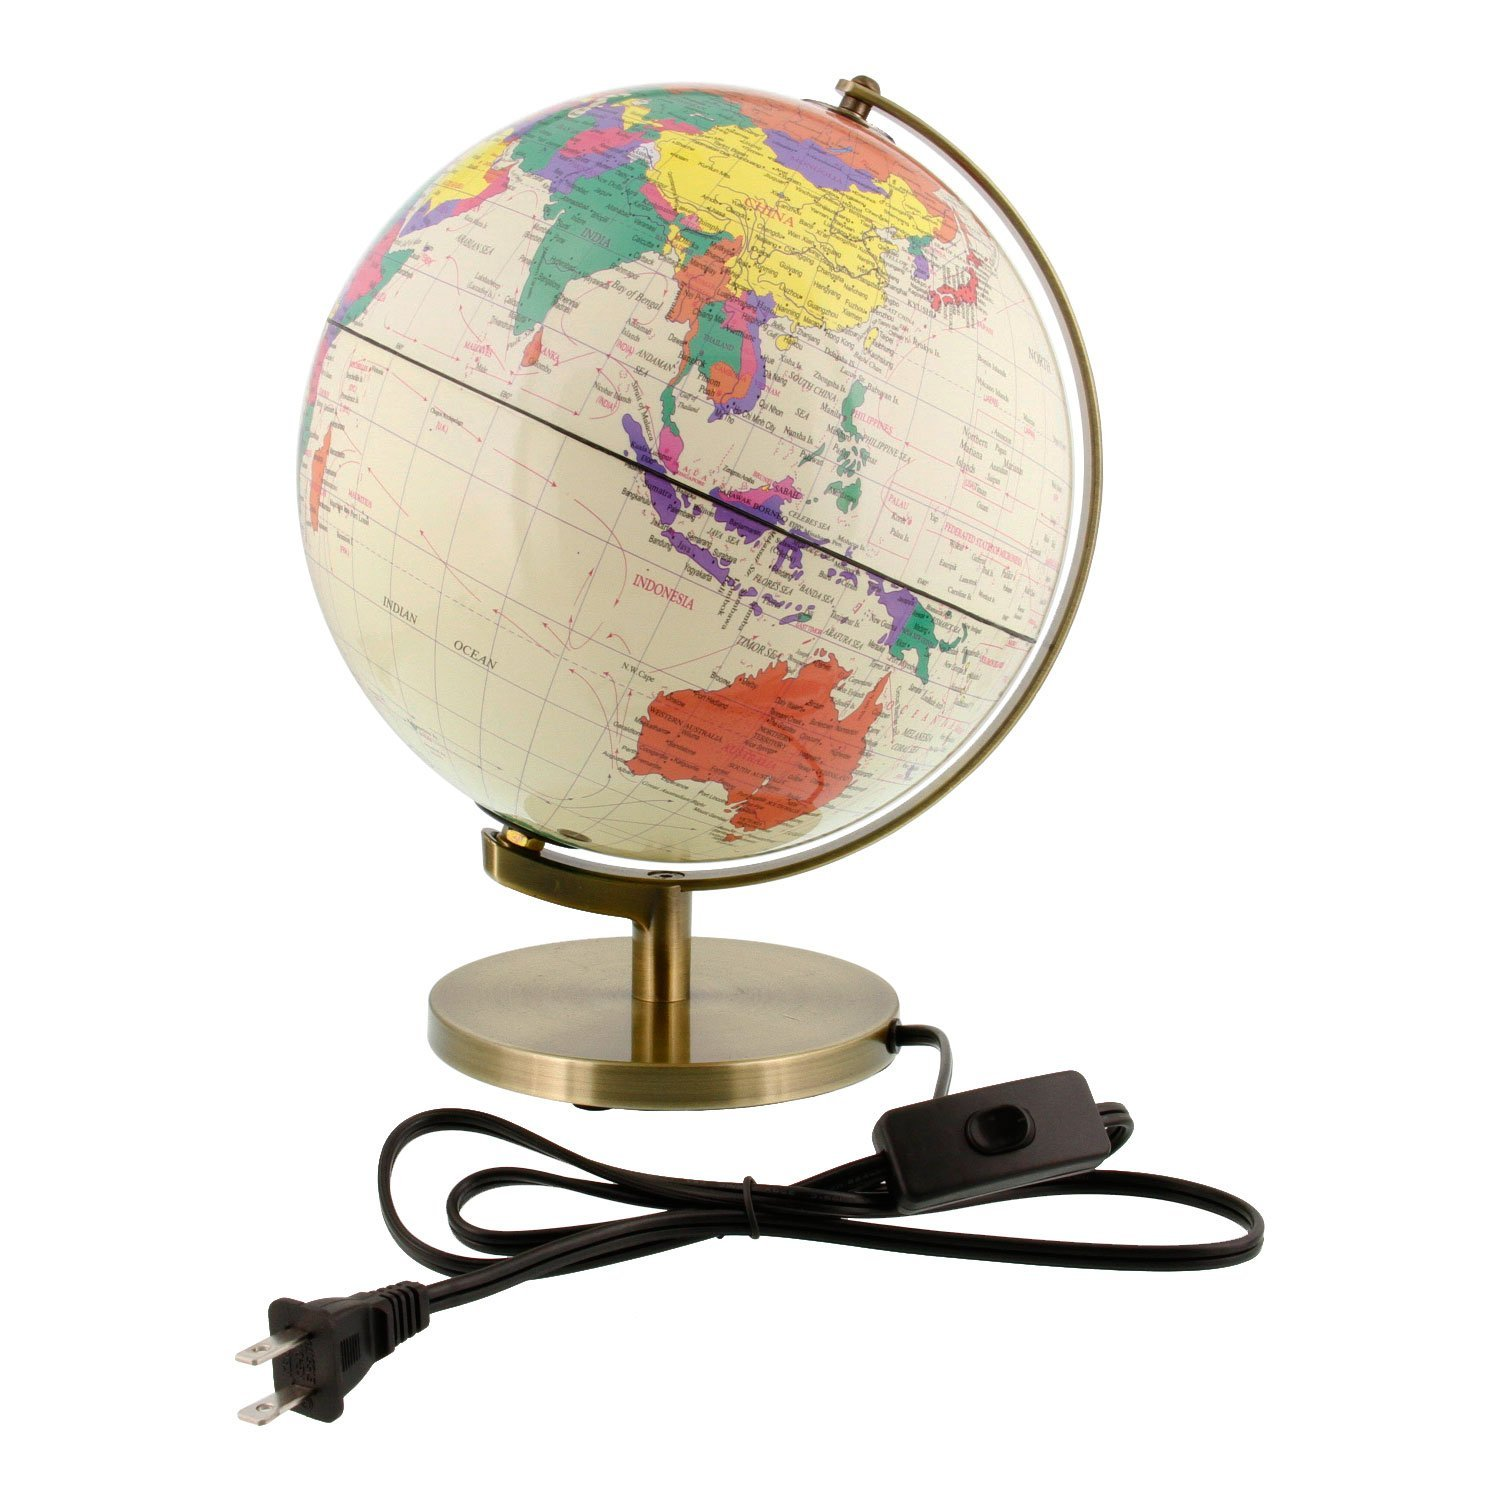 Review: Illuminated Desktop Earth Globe